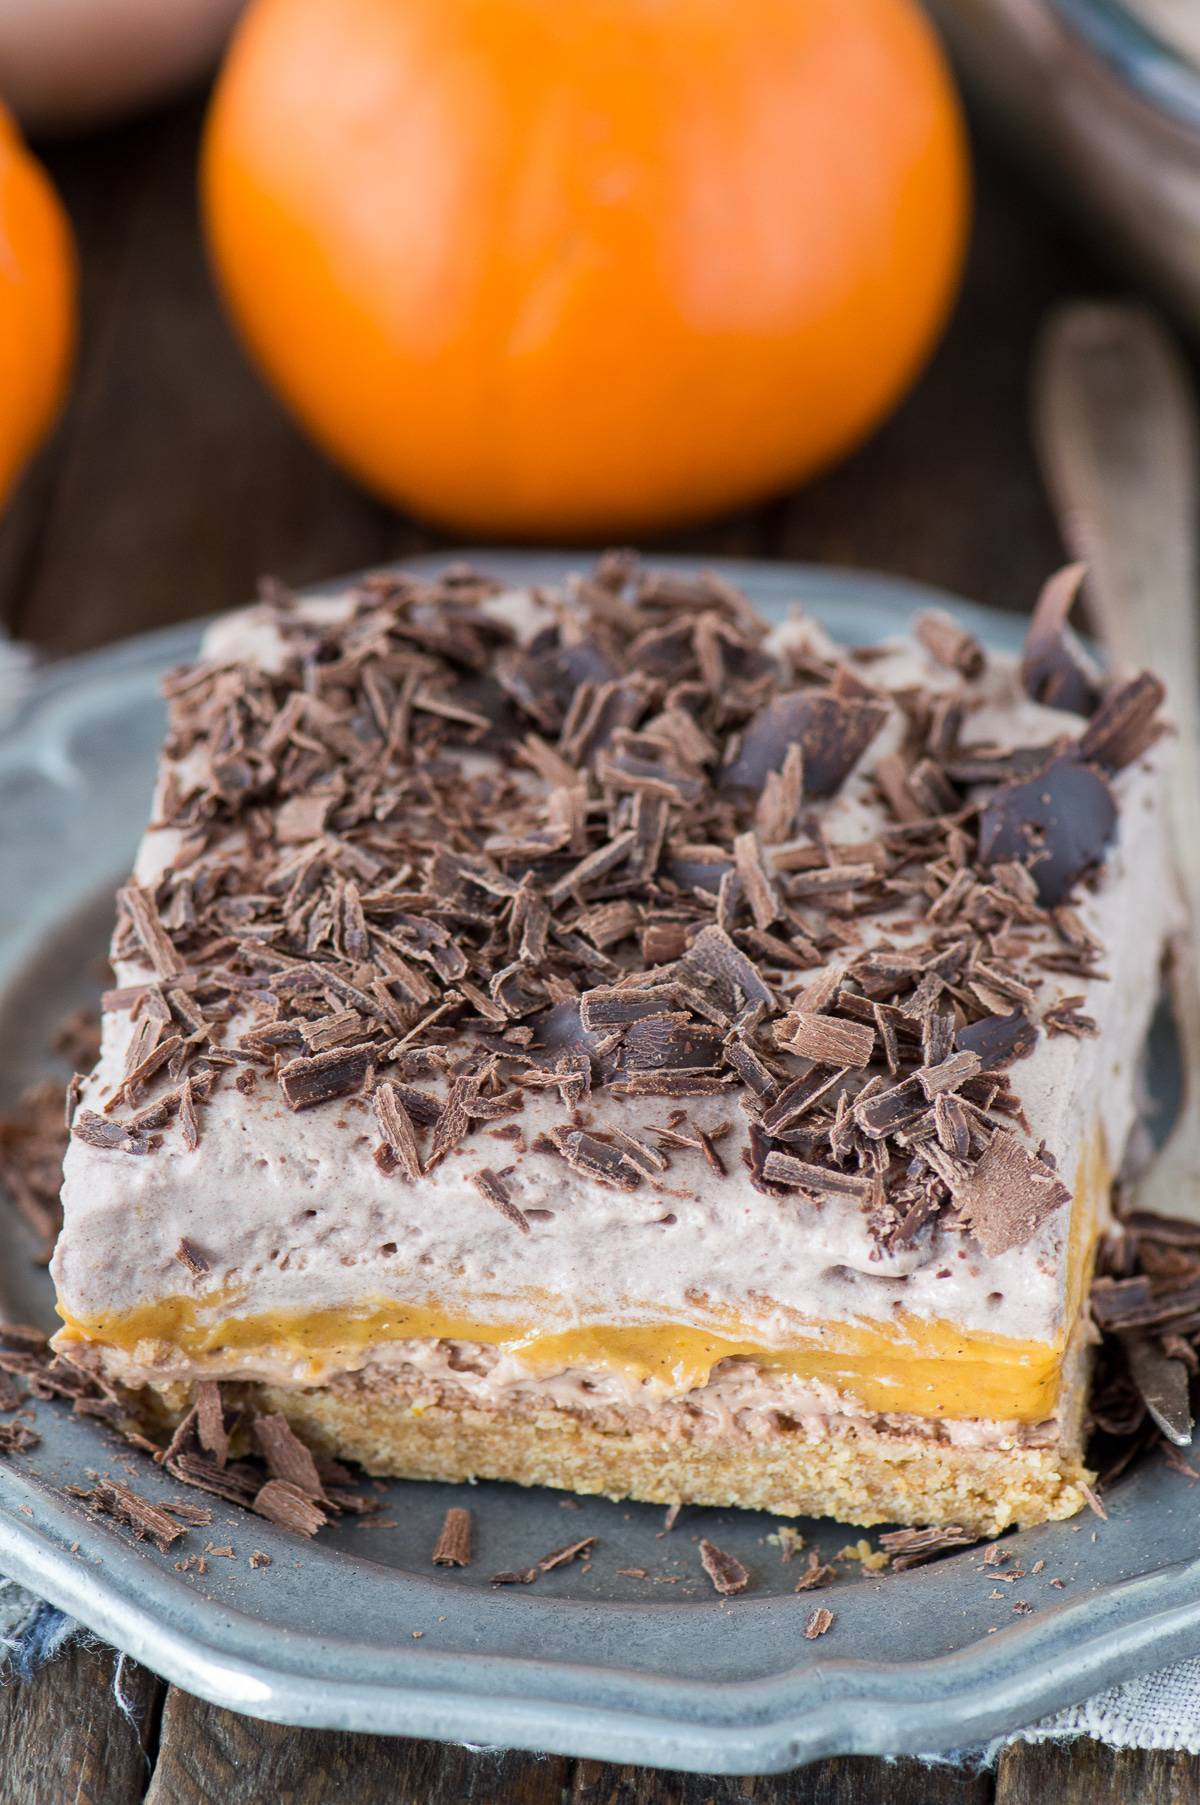 The BEST pumpkin dessert! A chocolate pumpkin dessert lasagna with 4 amazing layers. Featuring graham cracker crust, chocolate cheesecake, a pumpkin pudding layer, and homemade chocolate whipped cream!